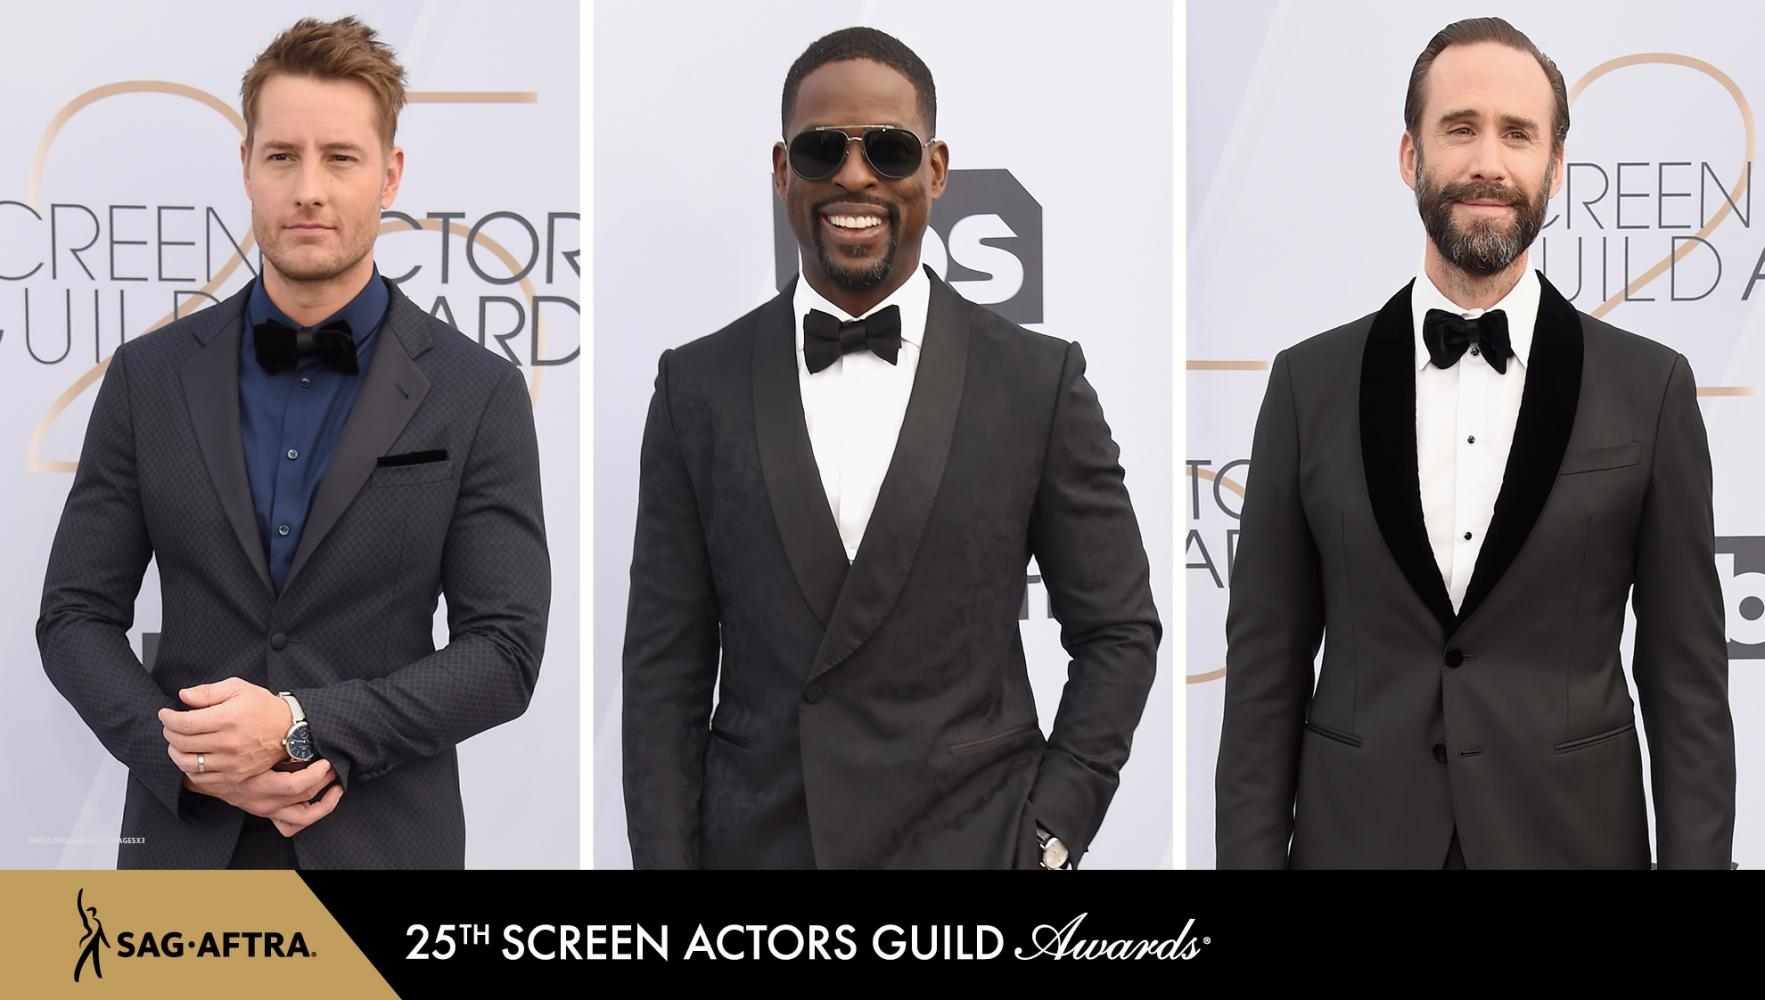 All standing in a dark tux with the SAG Awards backdrop